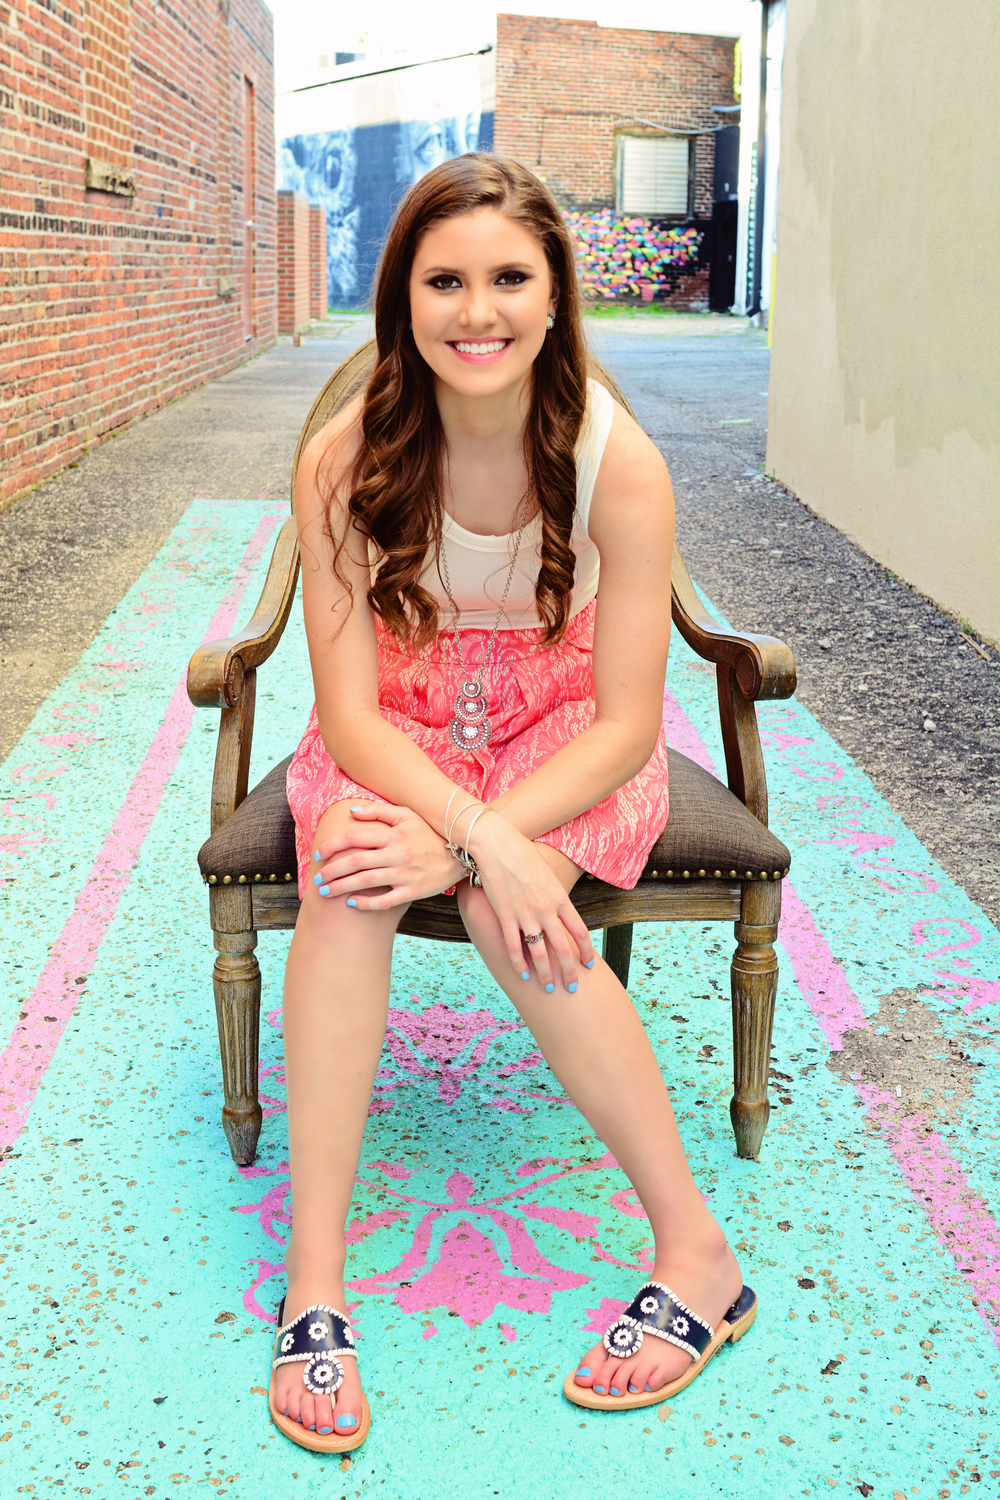 neon district Norfolk senior portrait Jan Casper Photography Virginia